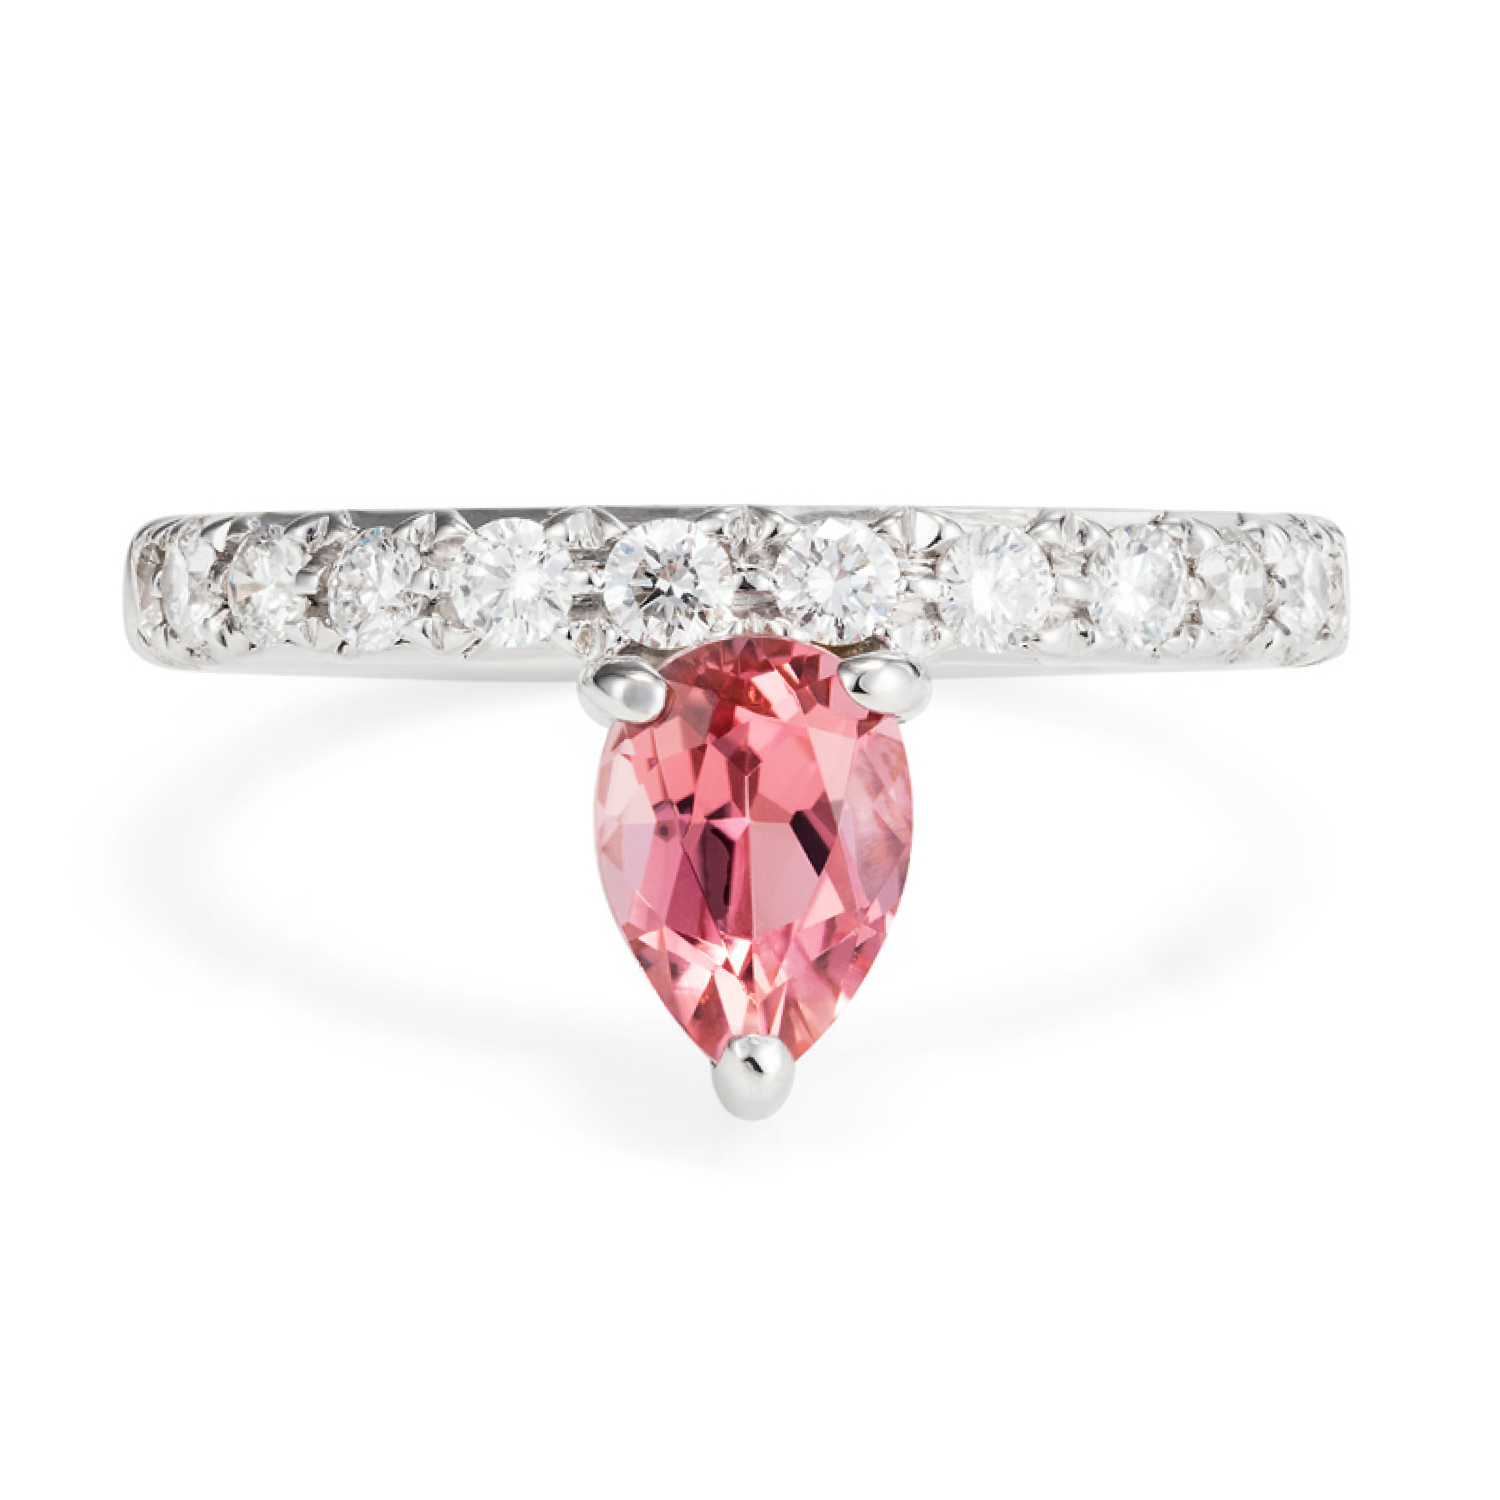 Dubini Jewelry - The Engagements